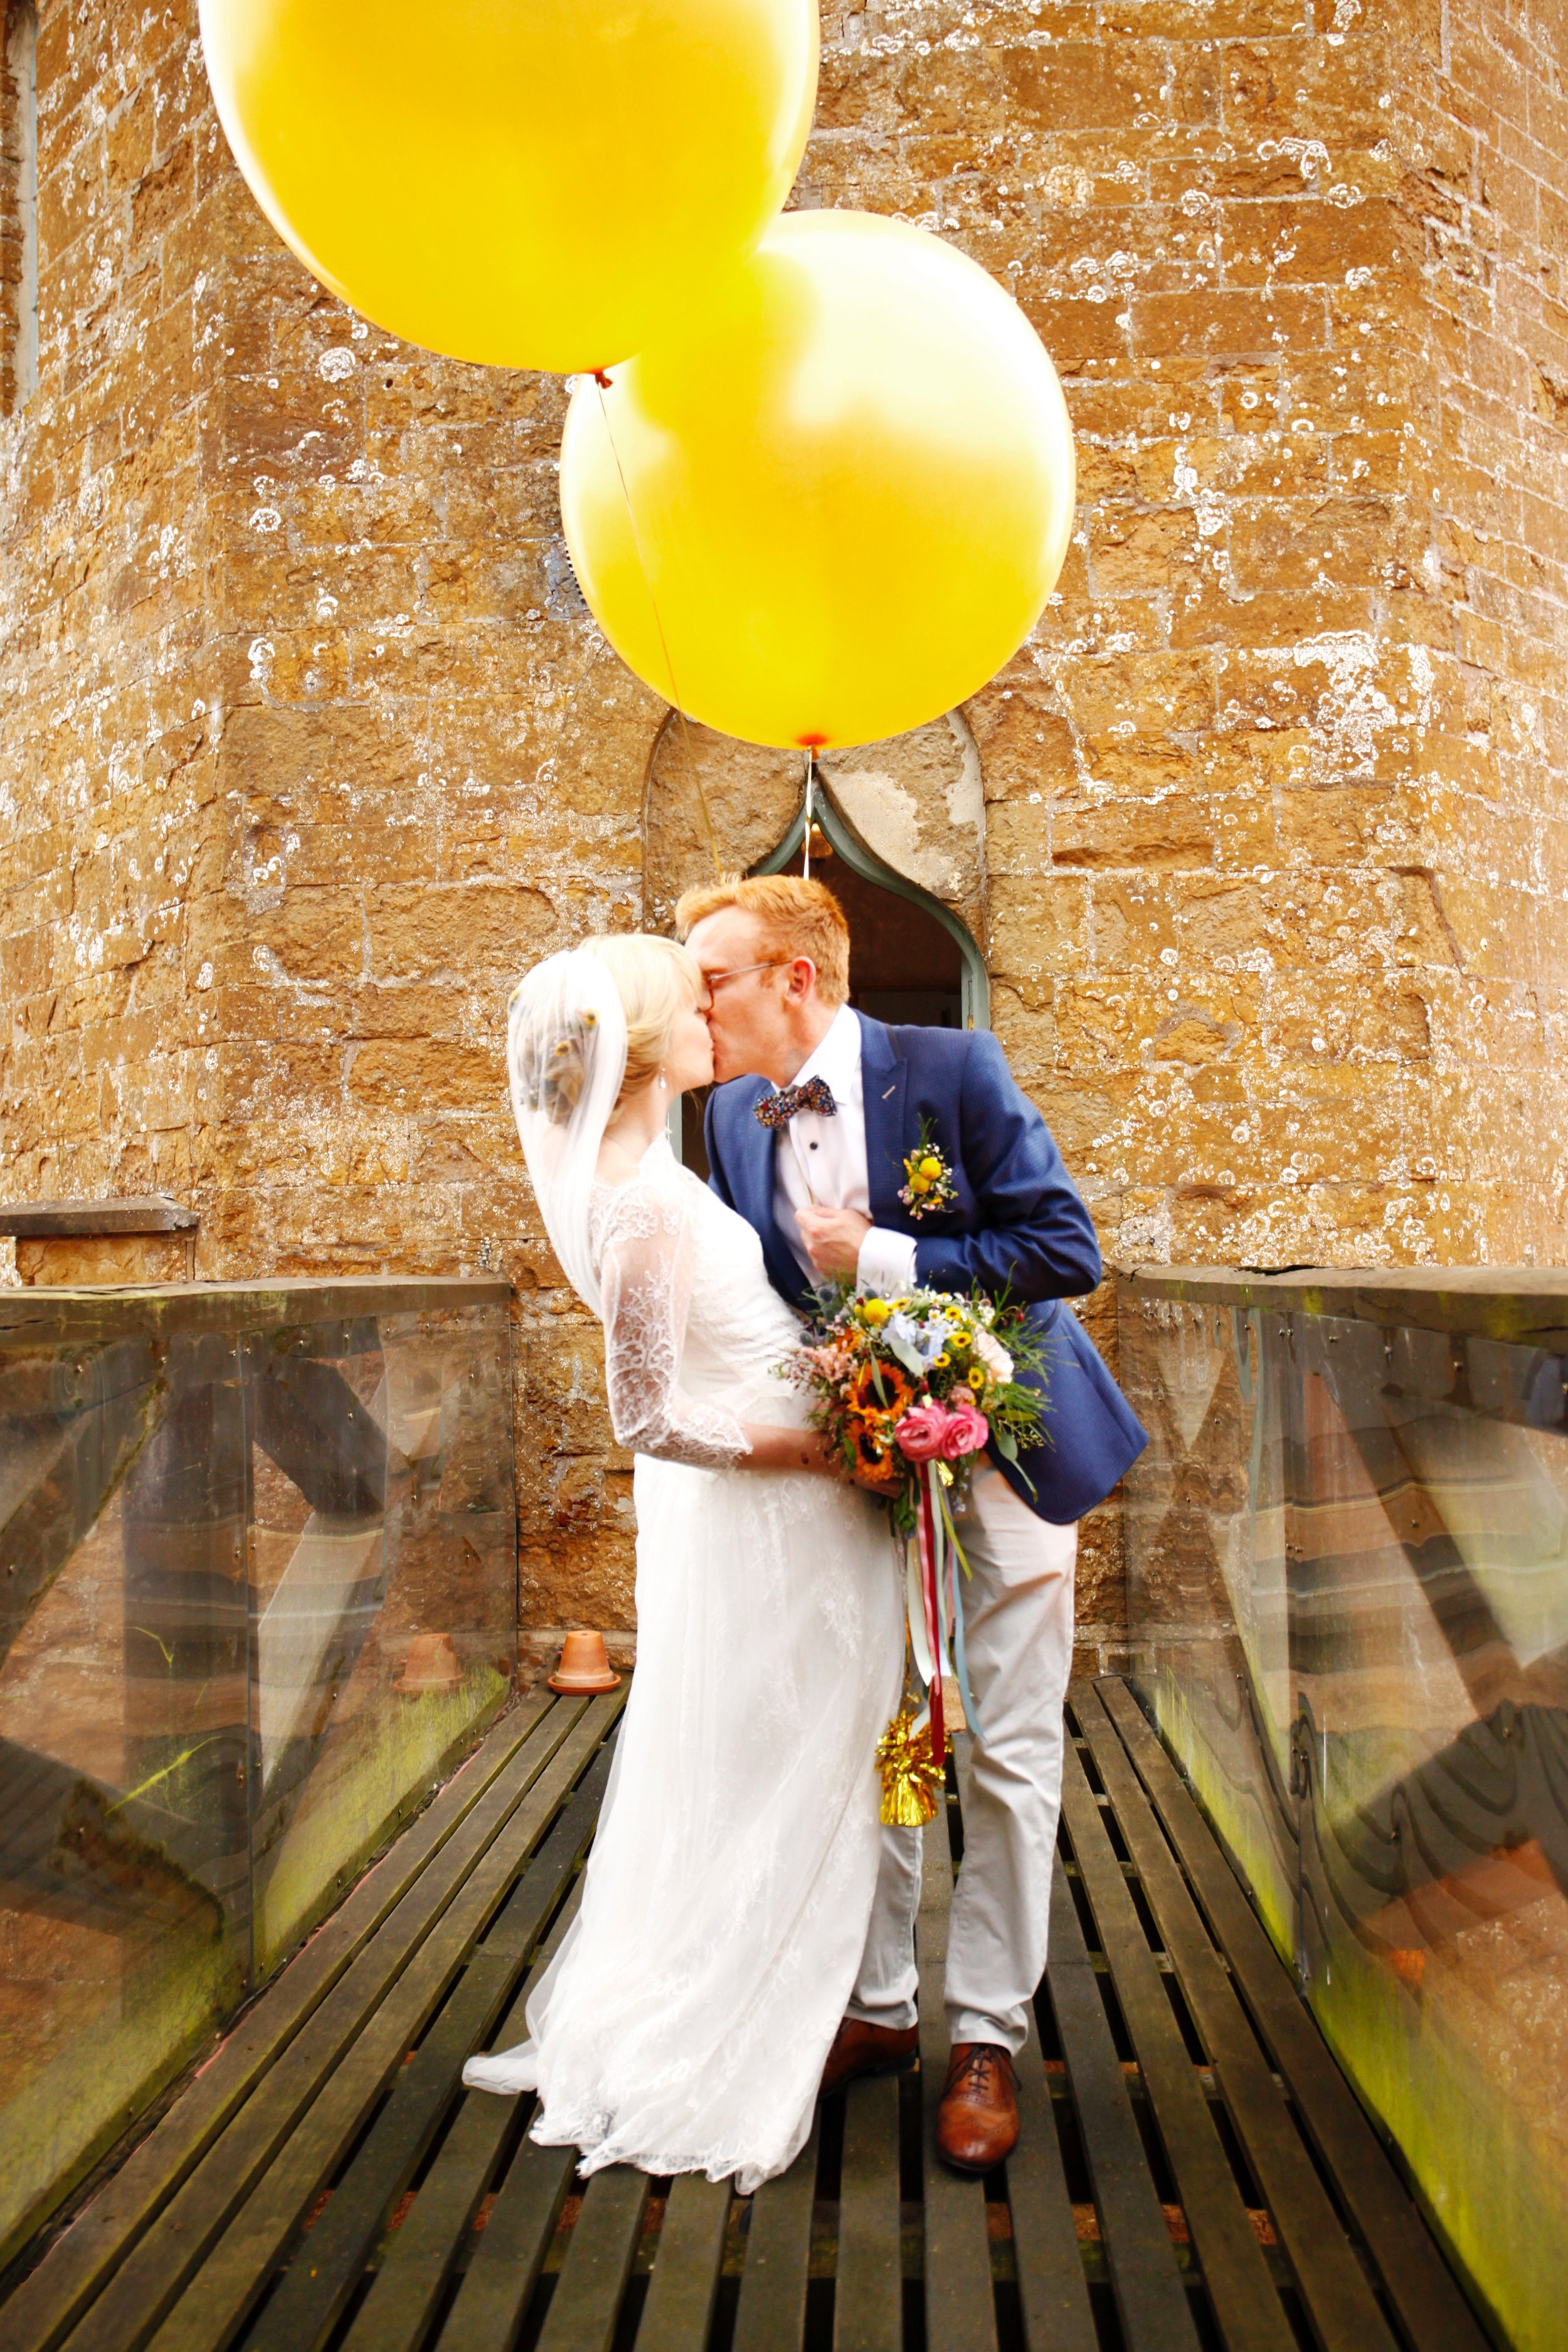 Wide selection of refreshments at the best wedding venue in Banbury